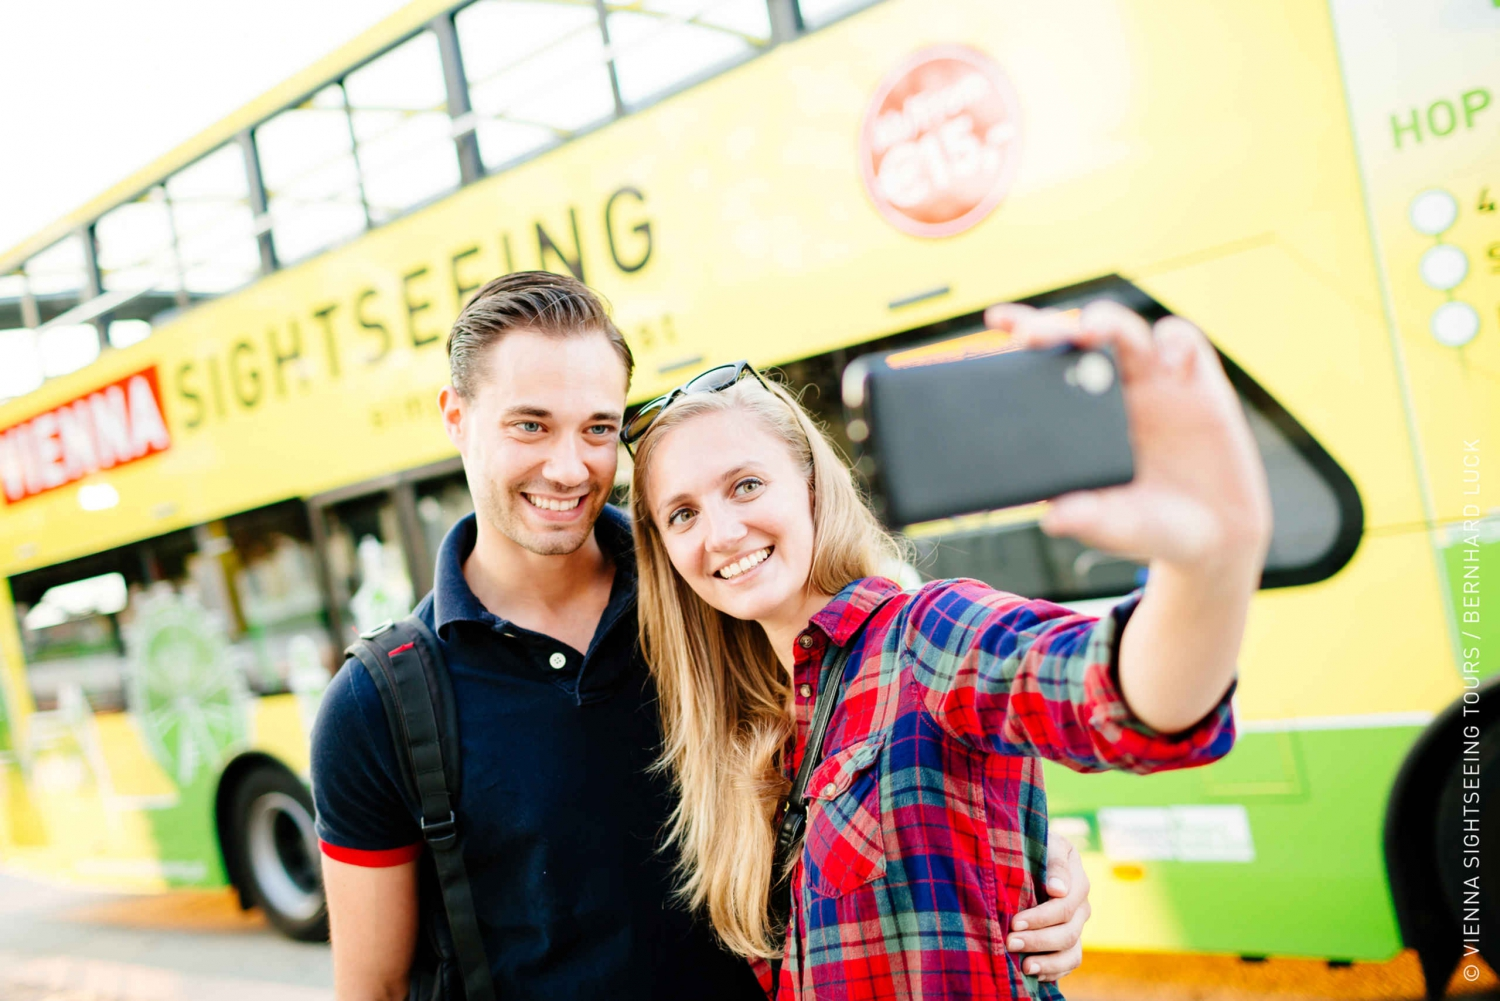 Hop-On Hop-Off Bus Ticket & Boat Cruise